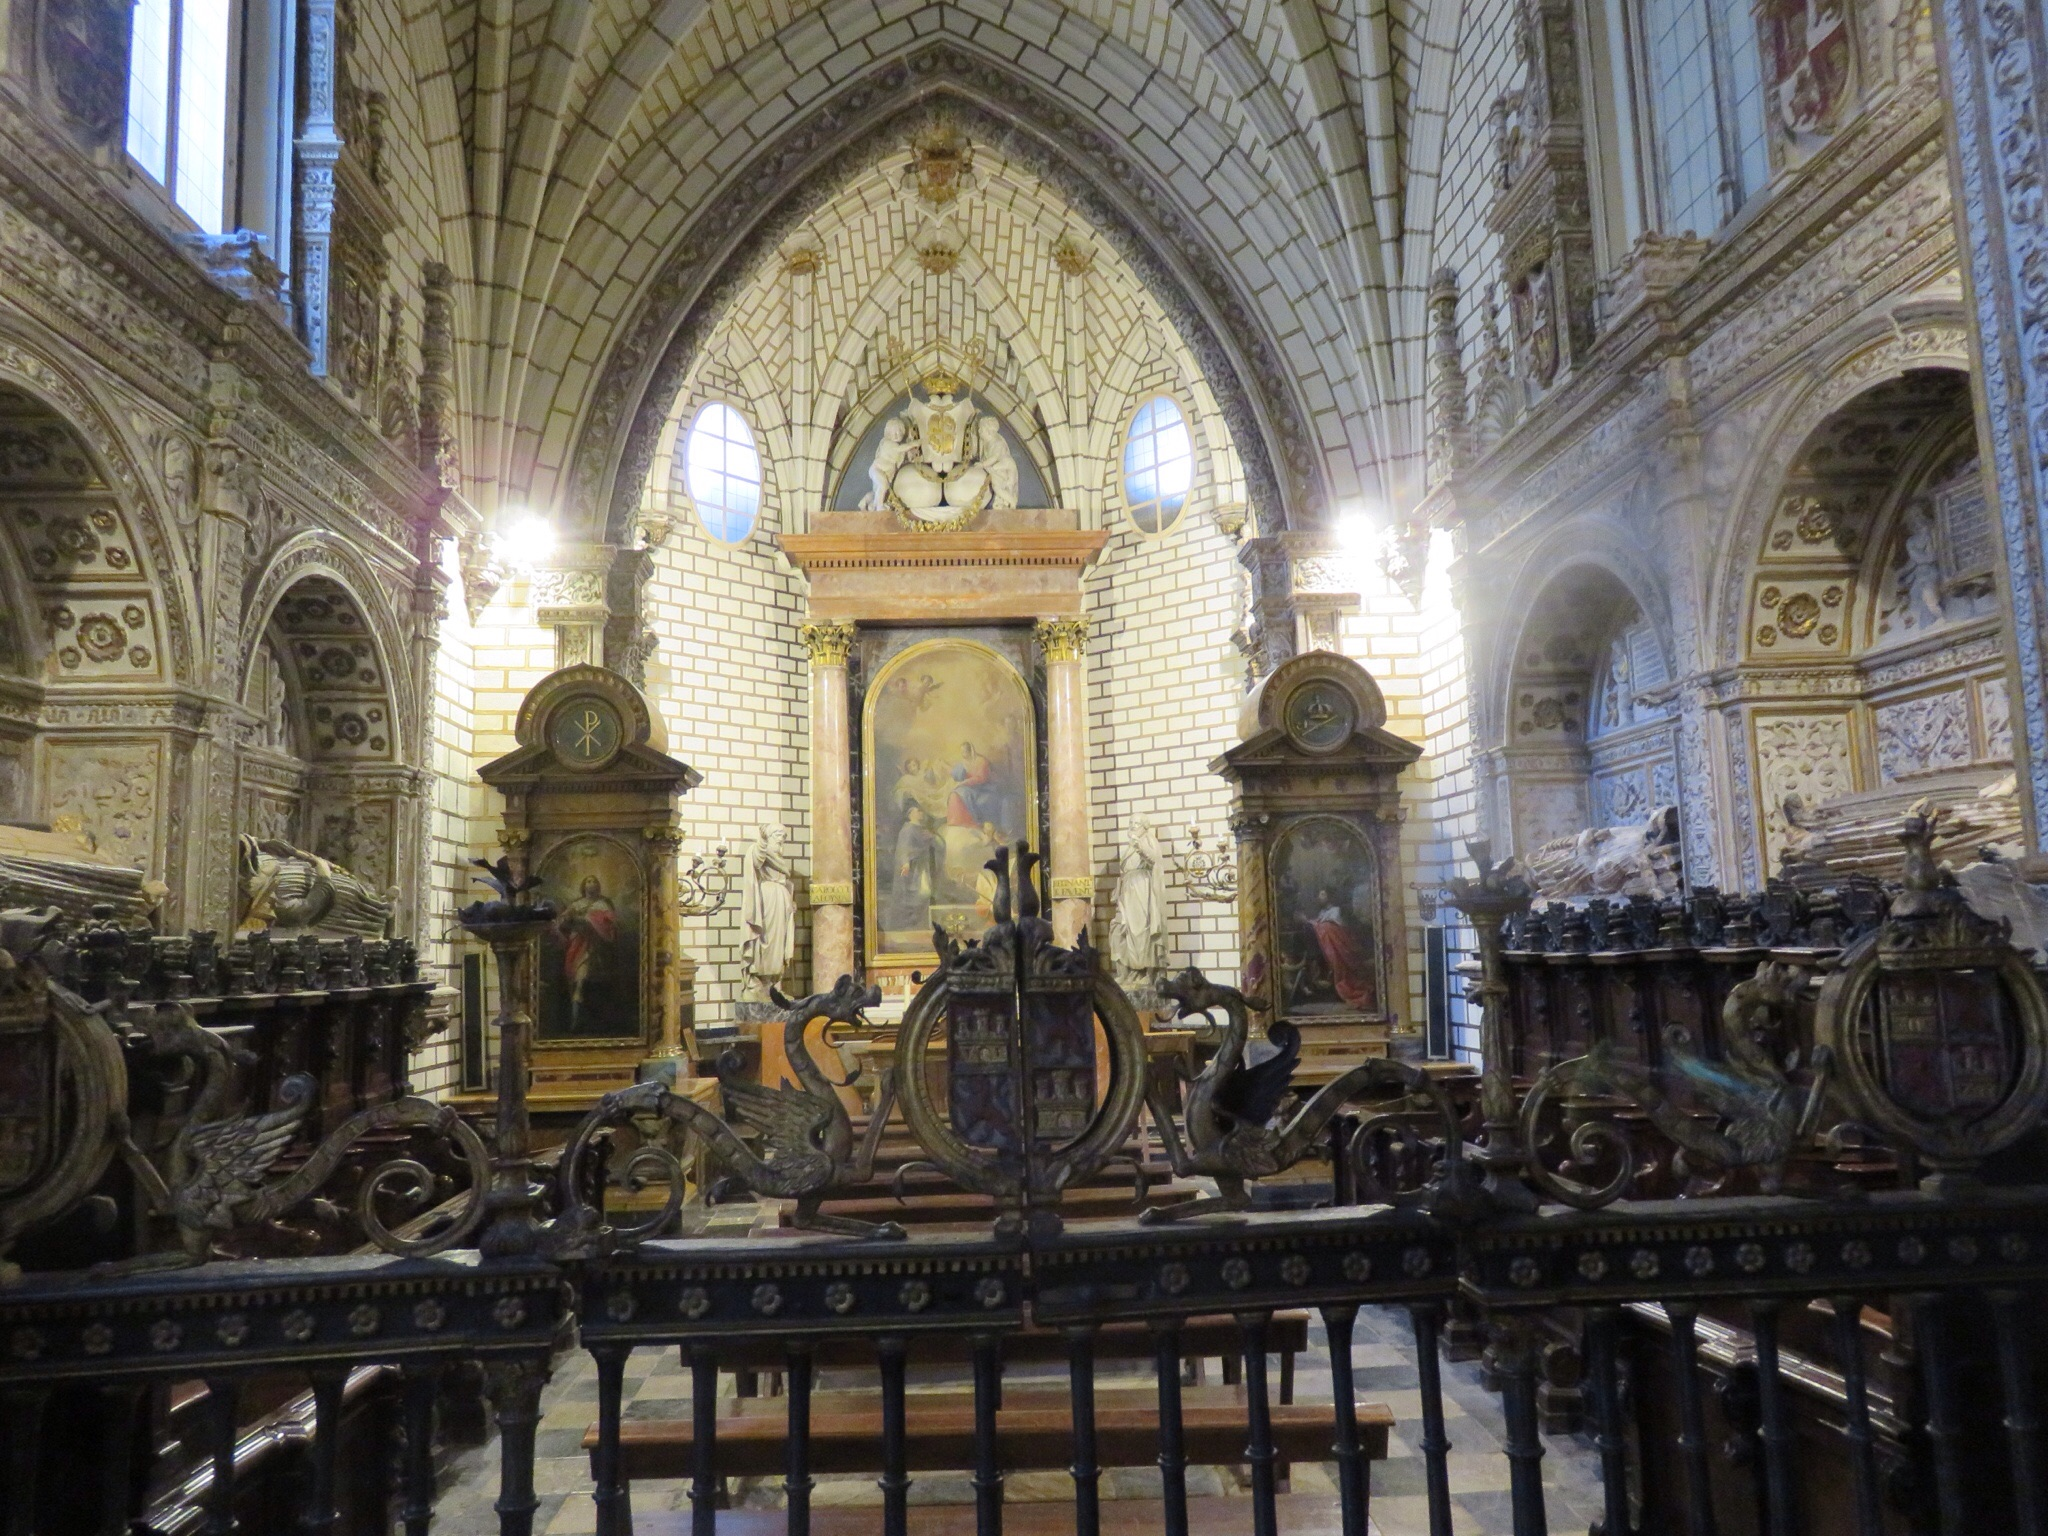 The choir, all of the wooden seats carved with individual scenes